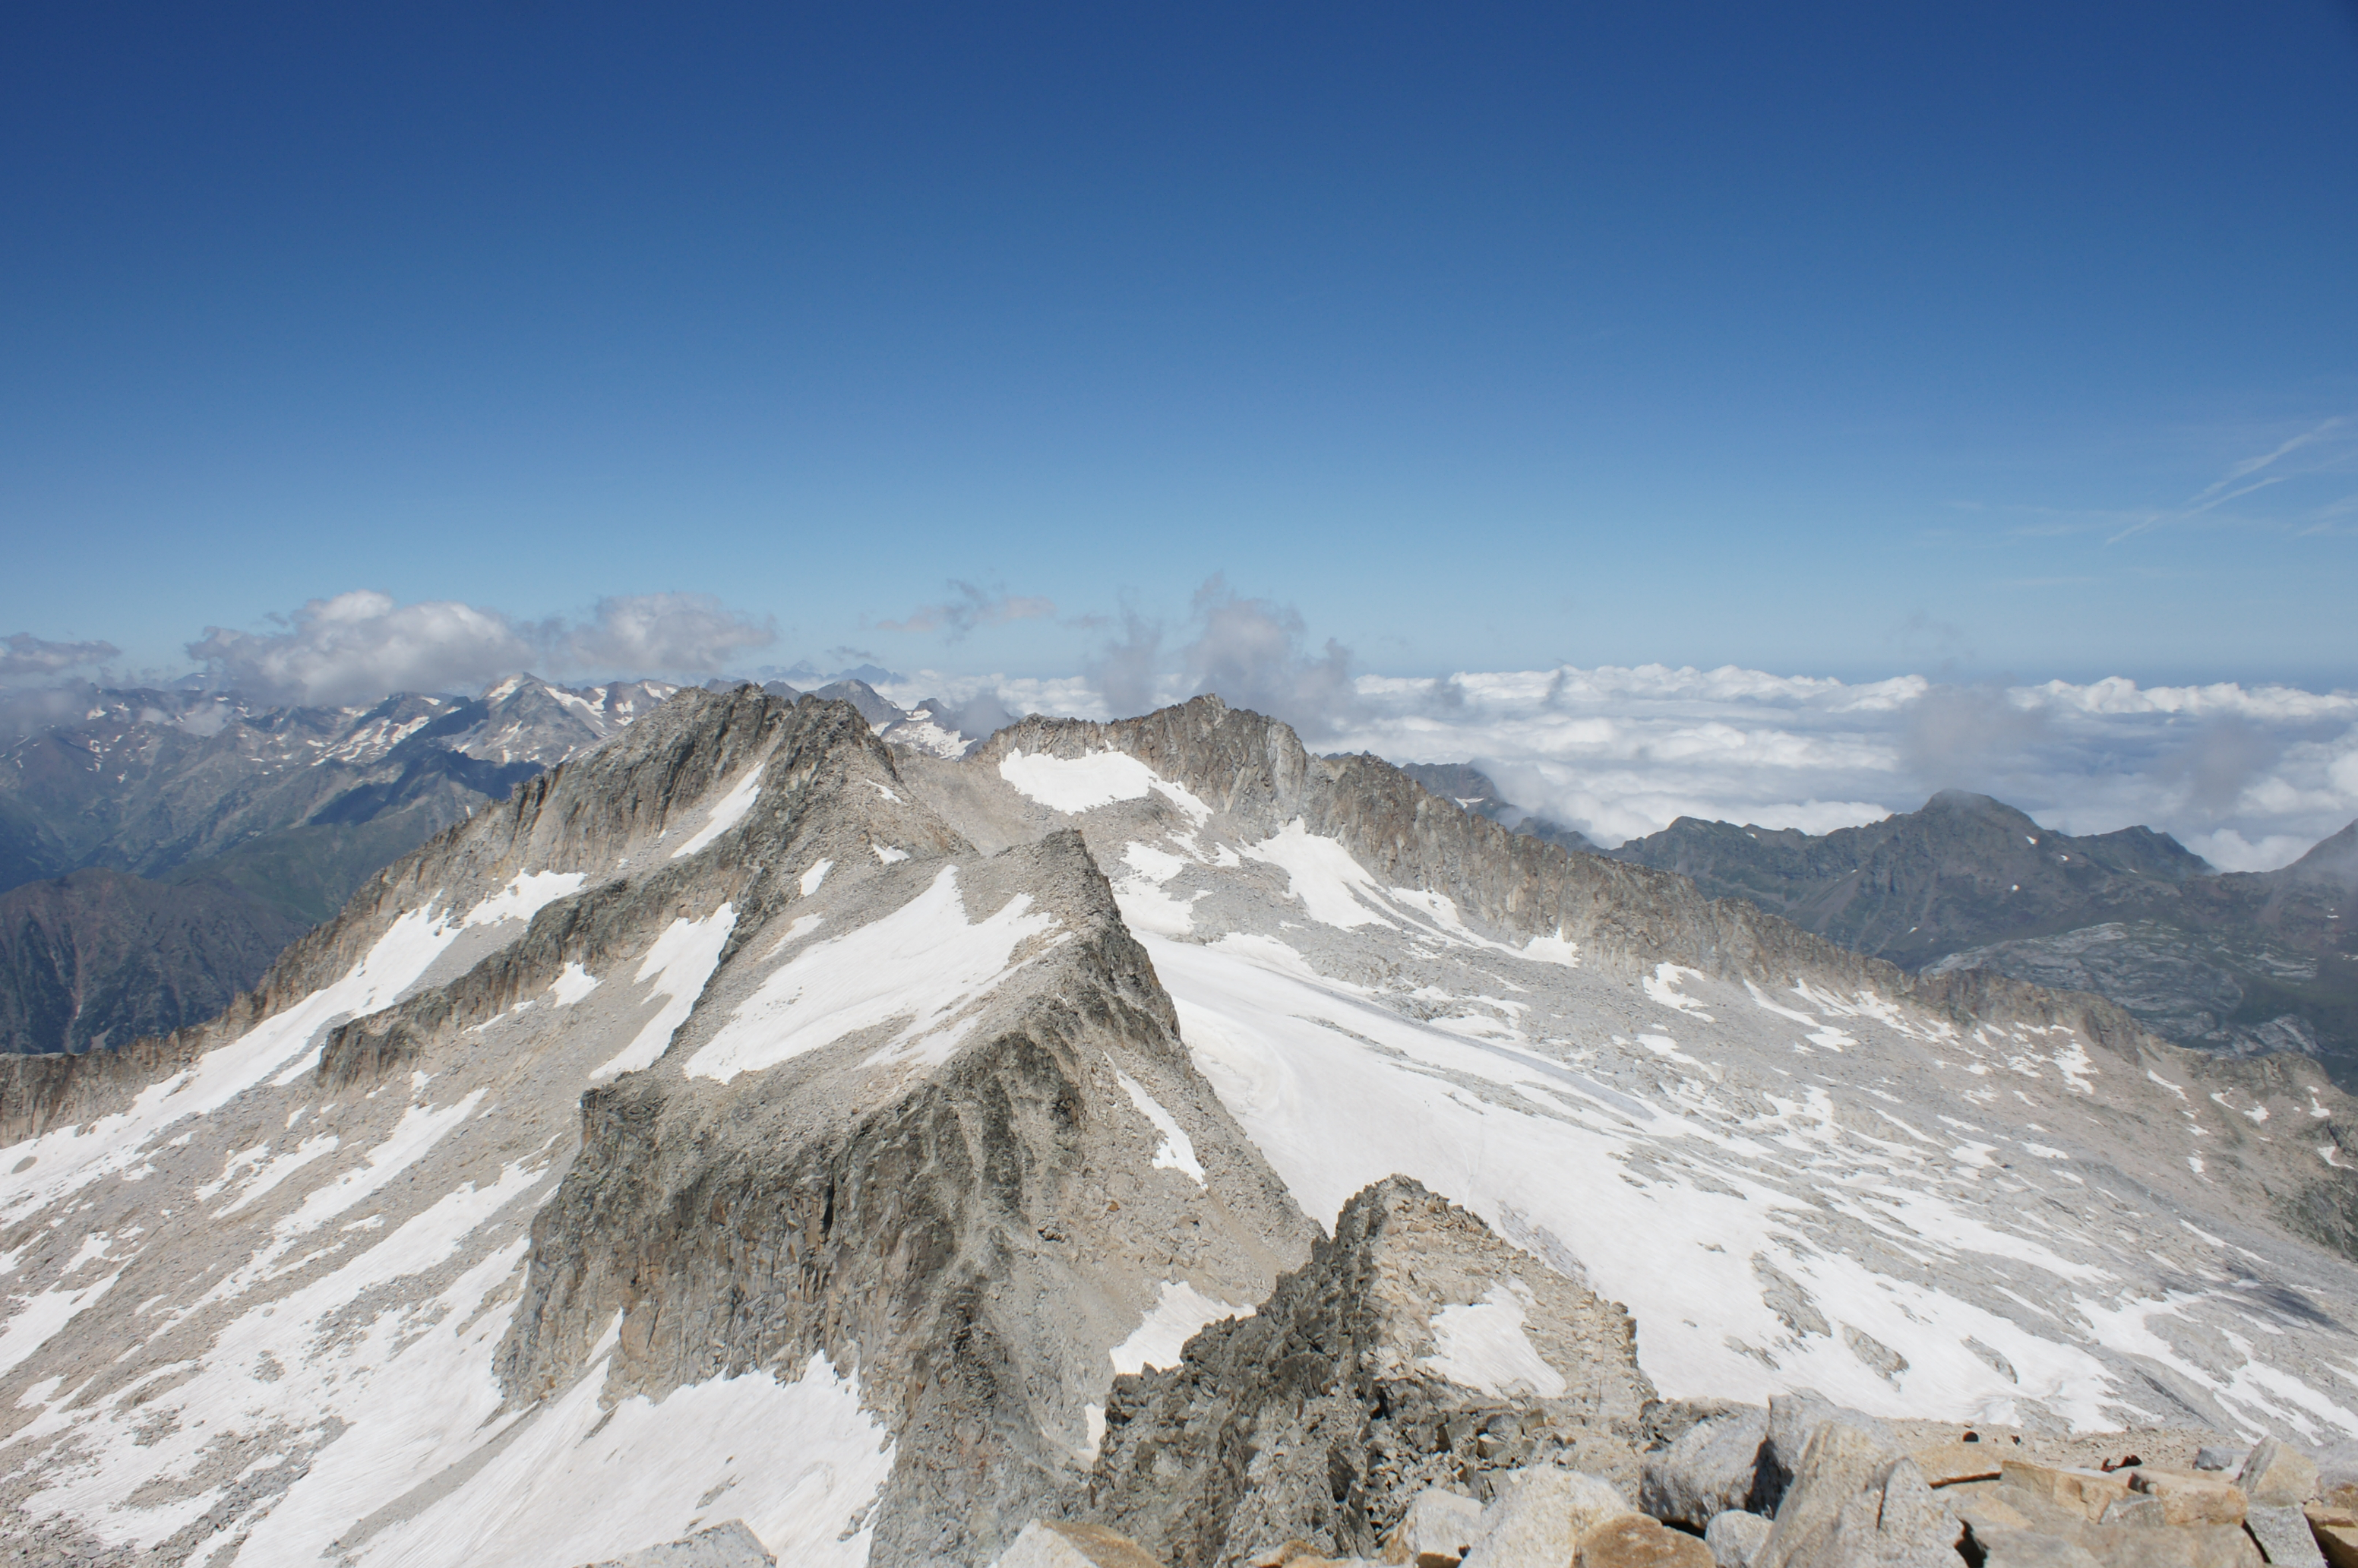 File:Pico de Corones and other peaks seen from Aneto.JPG.